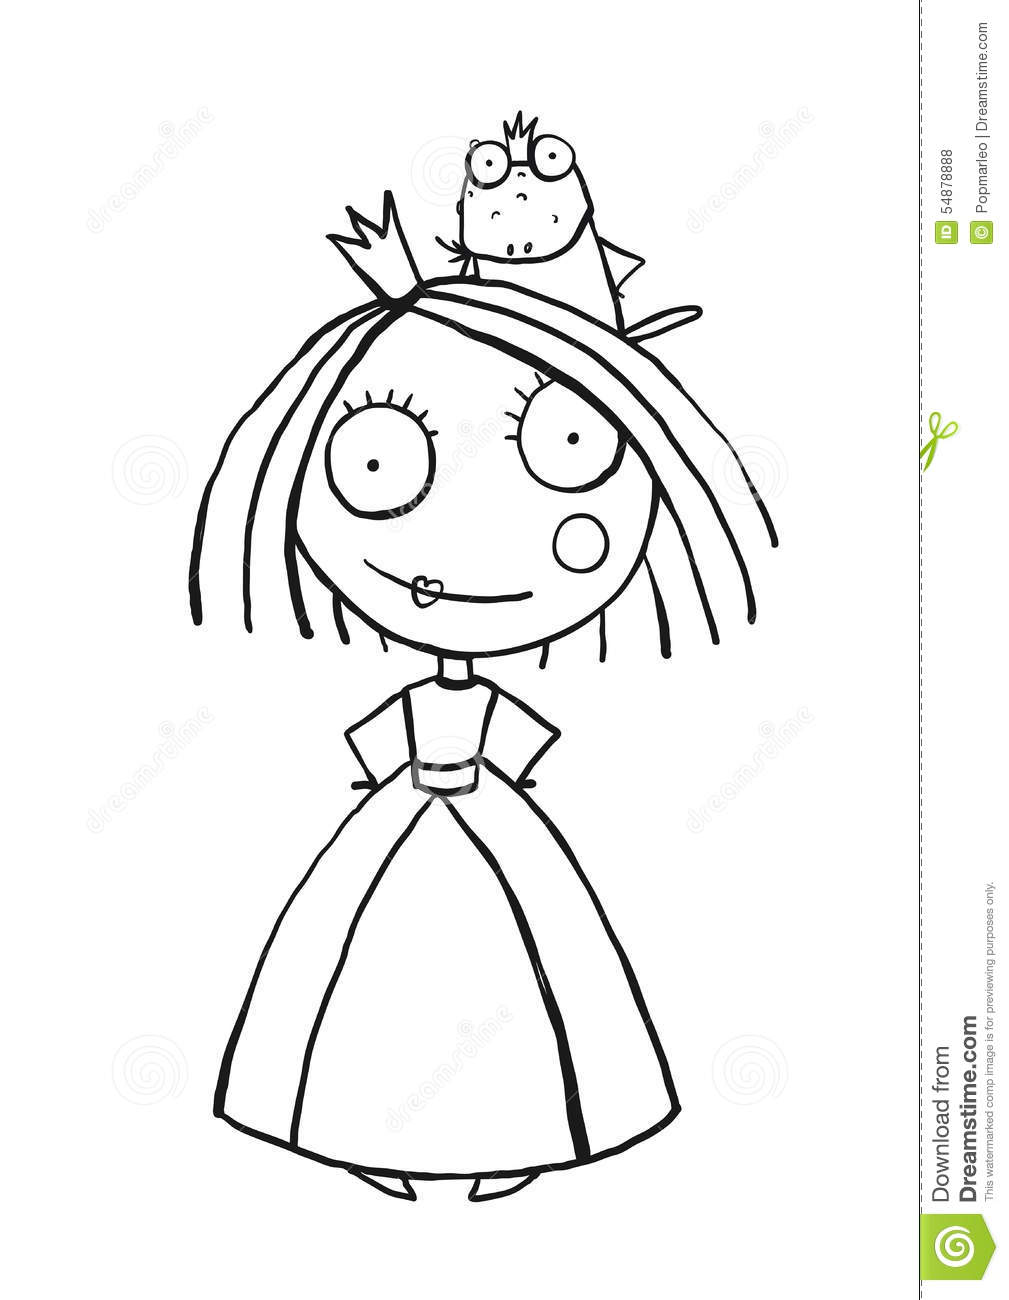 princess and prince frog portrait coloring page stock vector